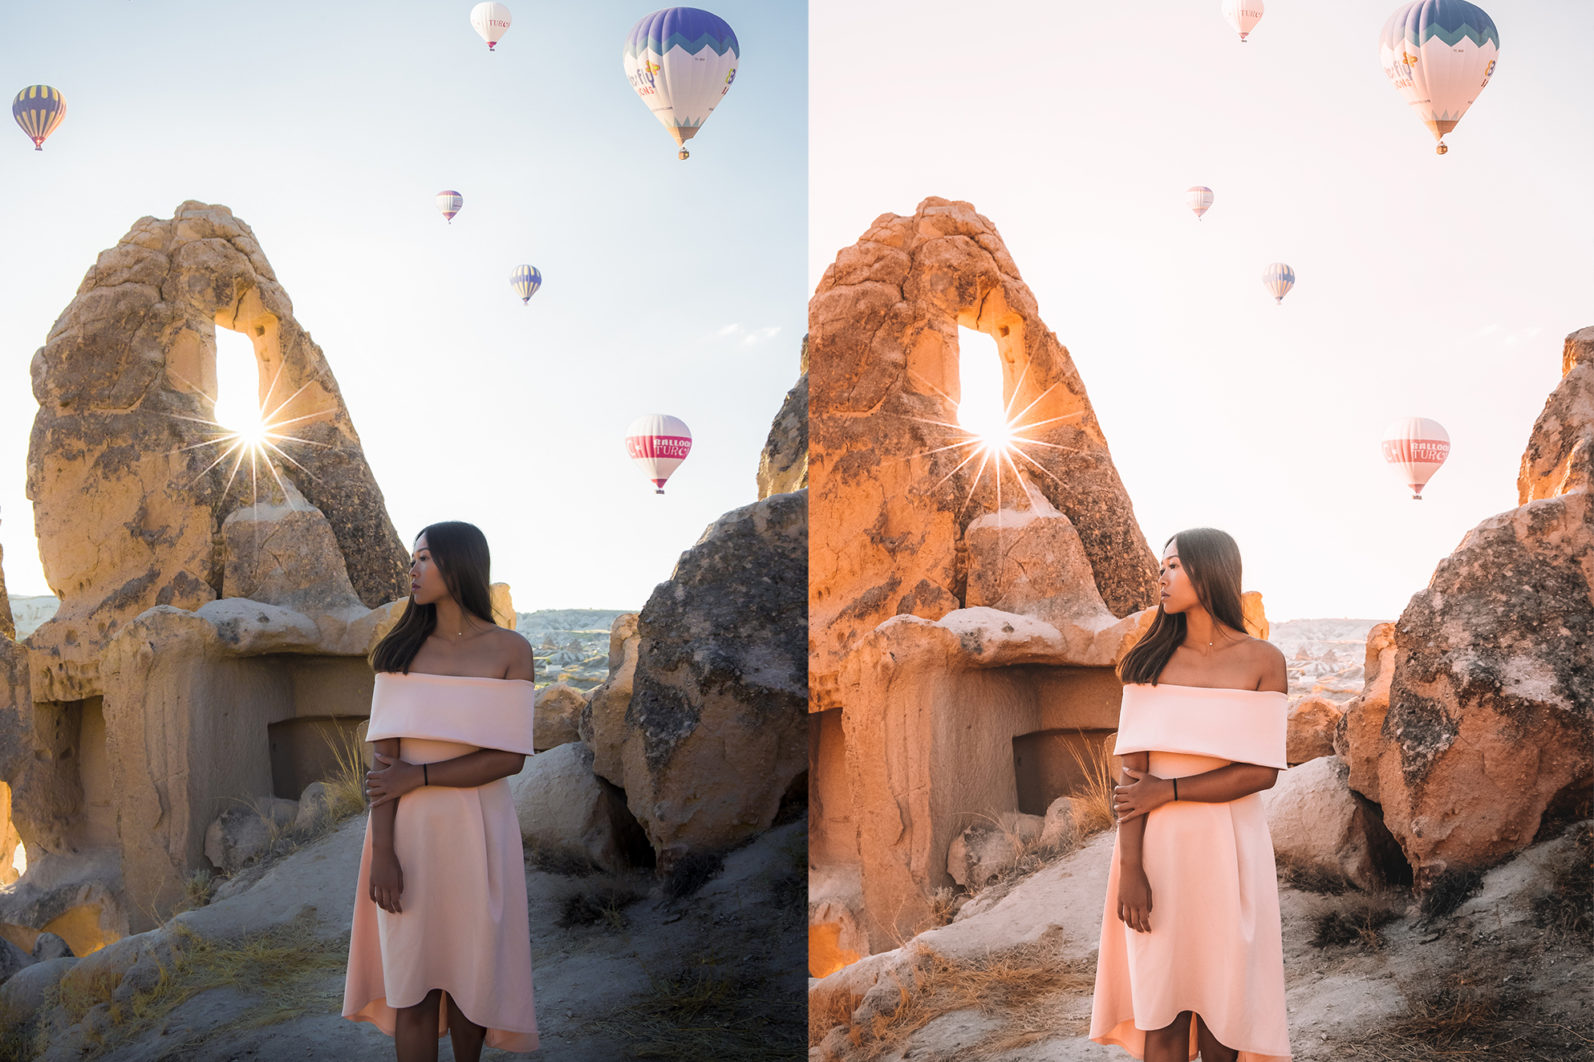 BUNDLE /// 04_Travel Collection // 64 x Desktop and Mobile Presets - 3 Hot Air Balloon1 -